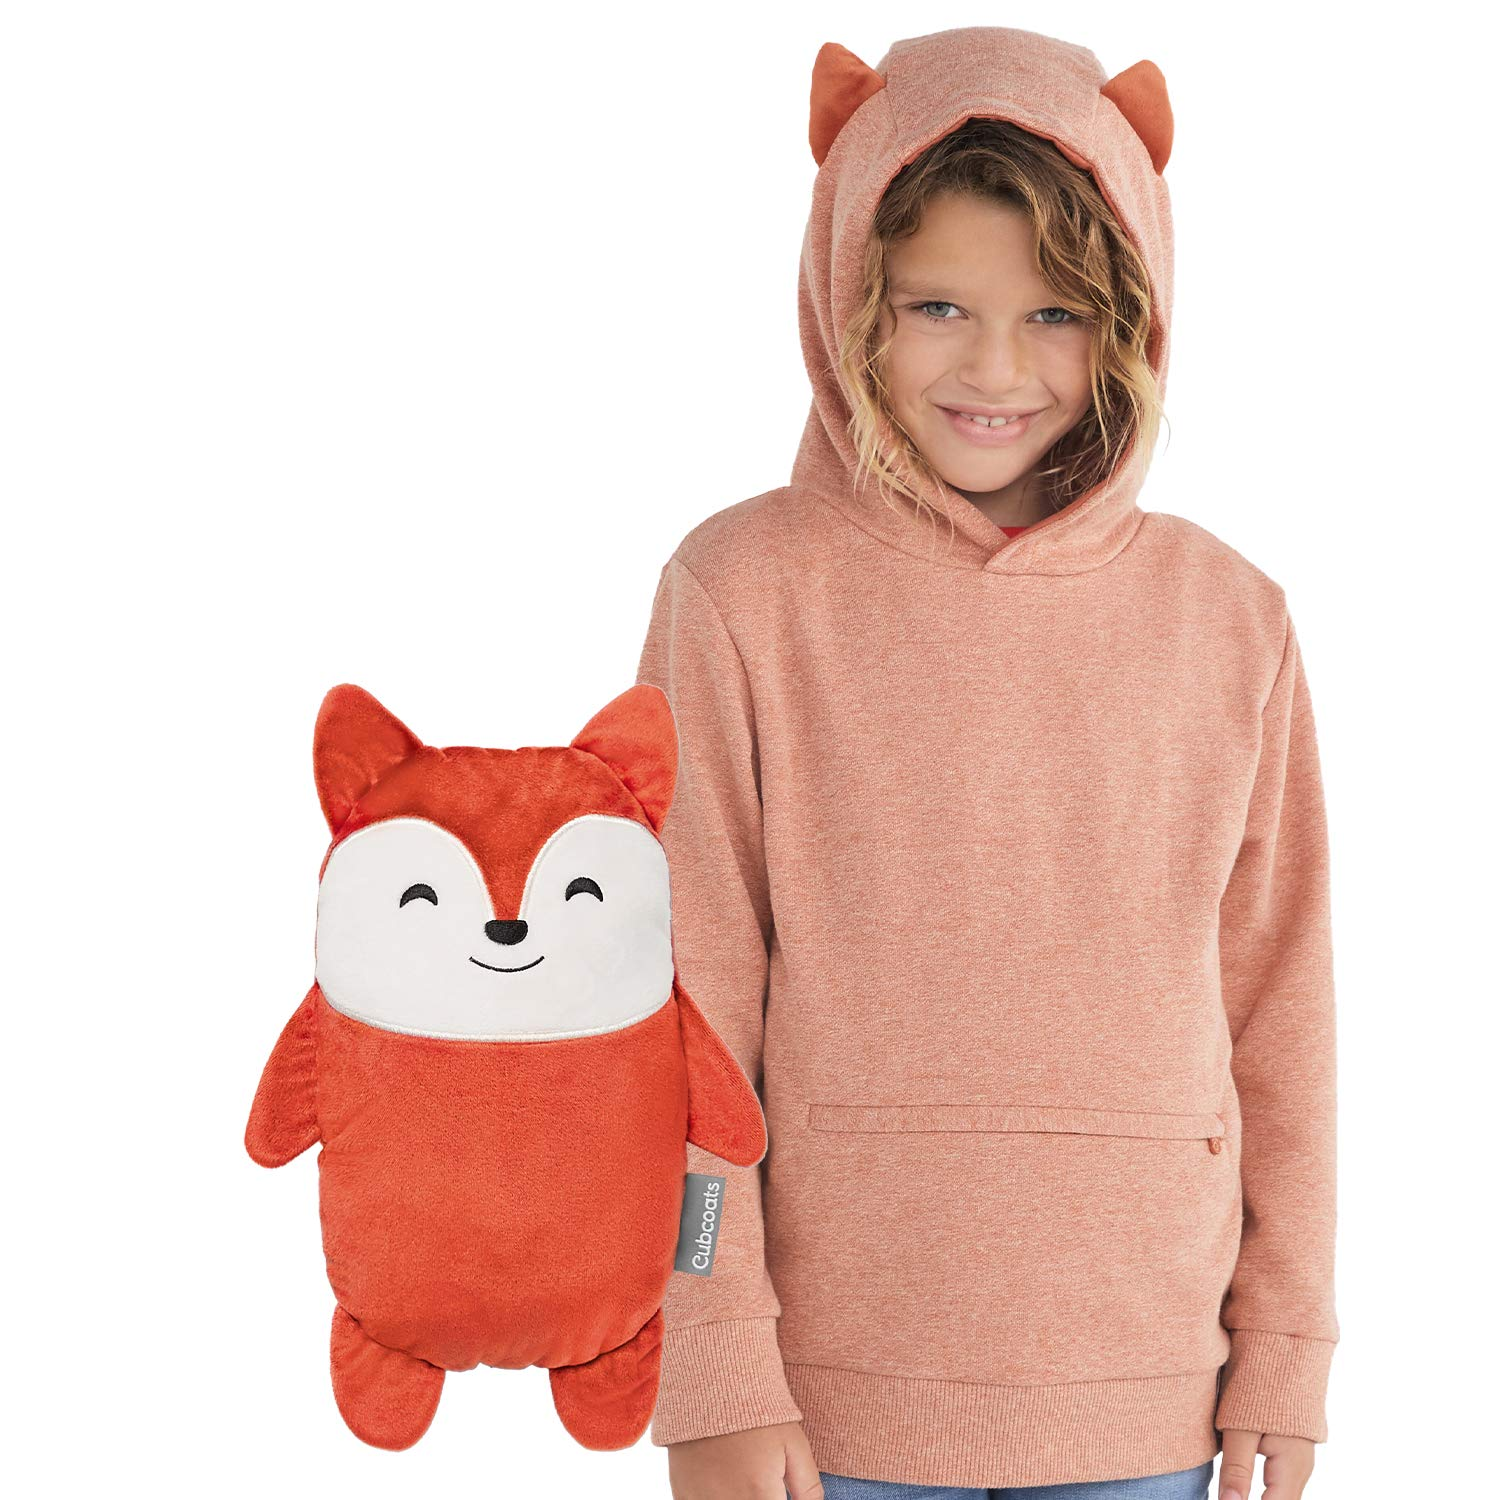 Cubcoats Flynn The Fox 2-in-1 Transforming Pullover Hoodie & Soft Plushie